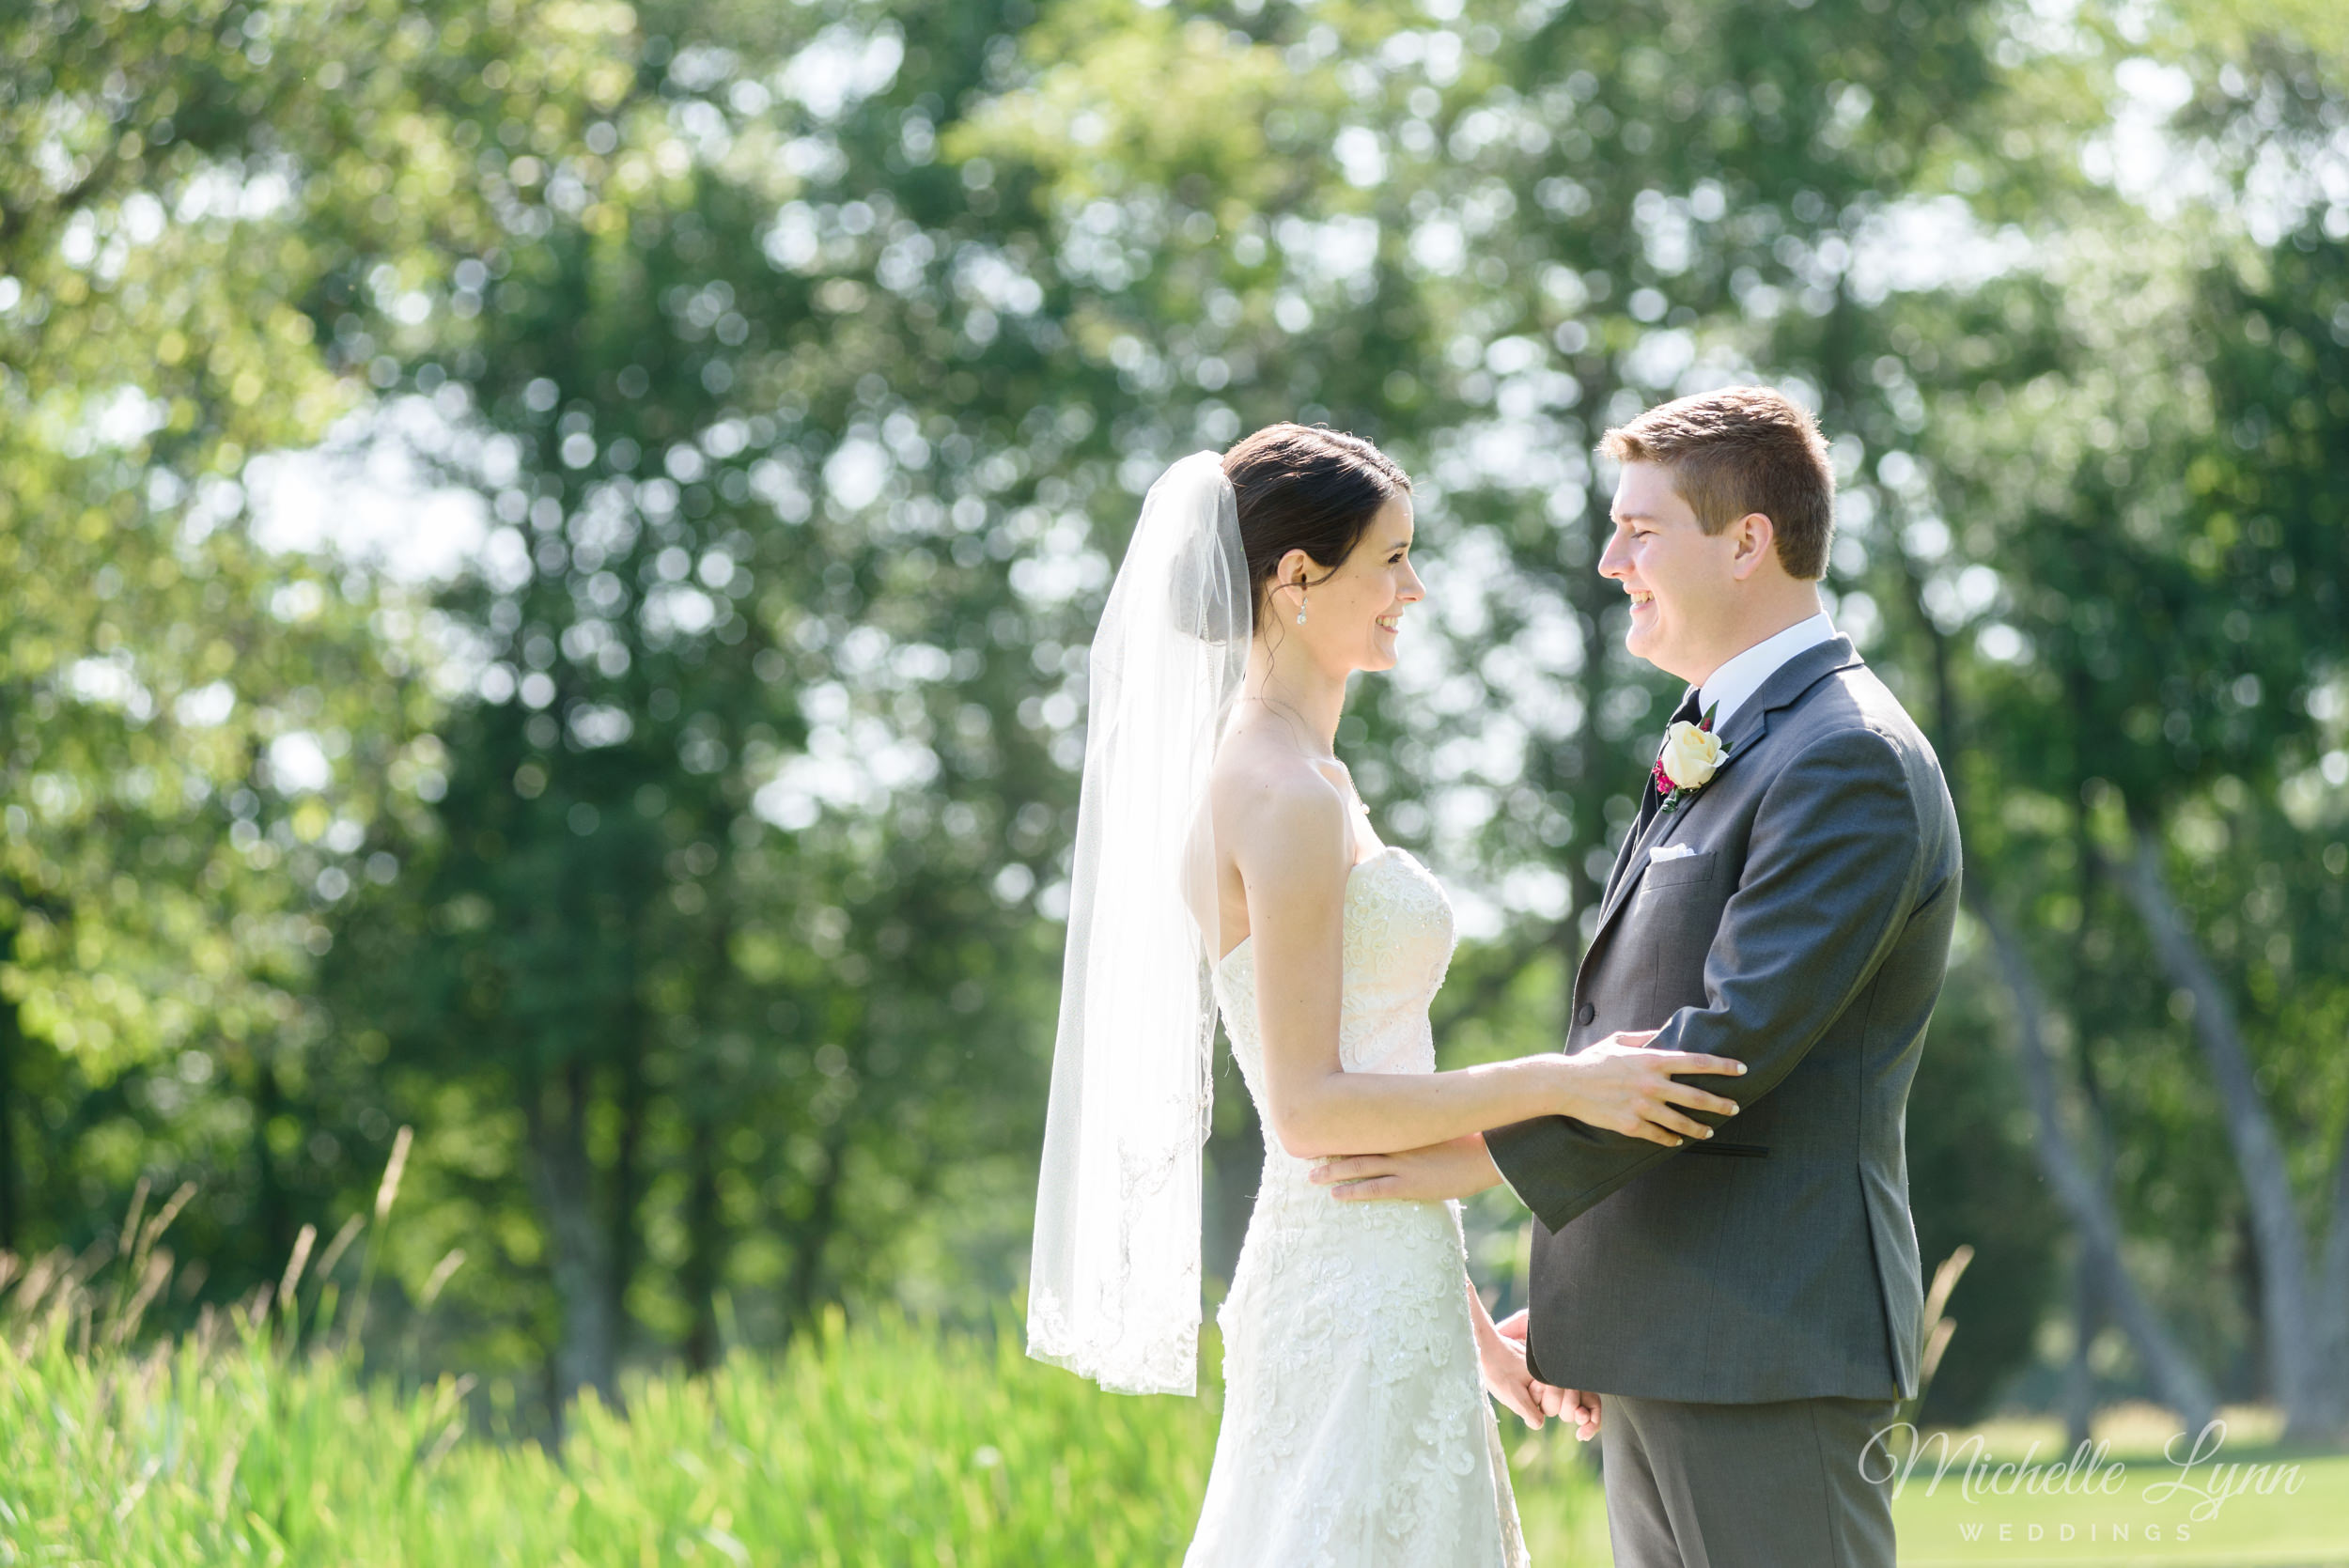 mlw-loft-at-sweet-water-country-club-wedding-photography-22.jpg